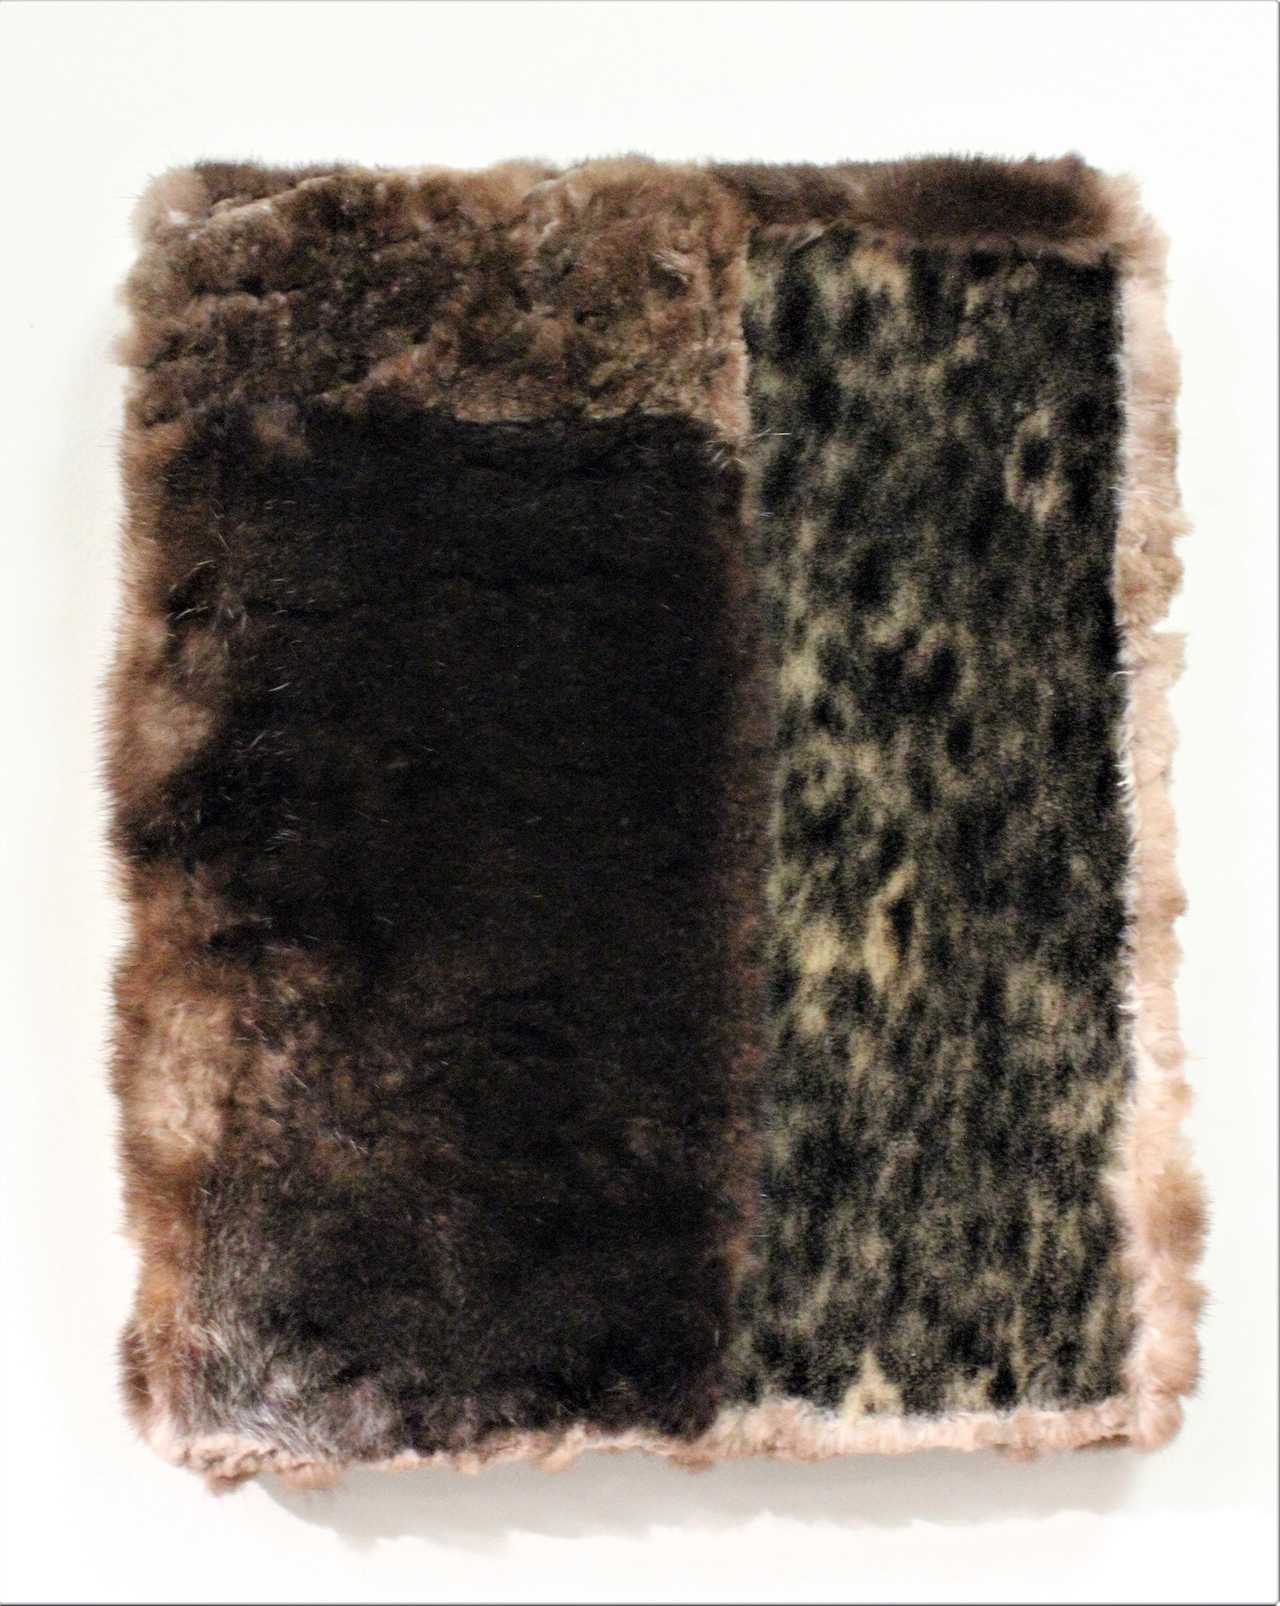 A painting/sculpture made from sea otter and seal fur